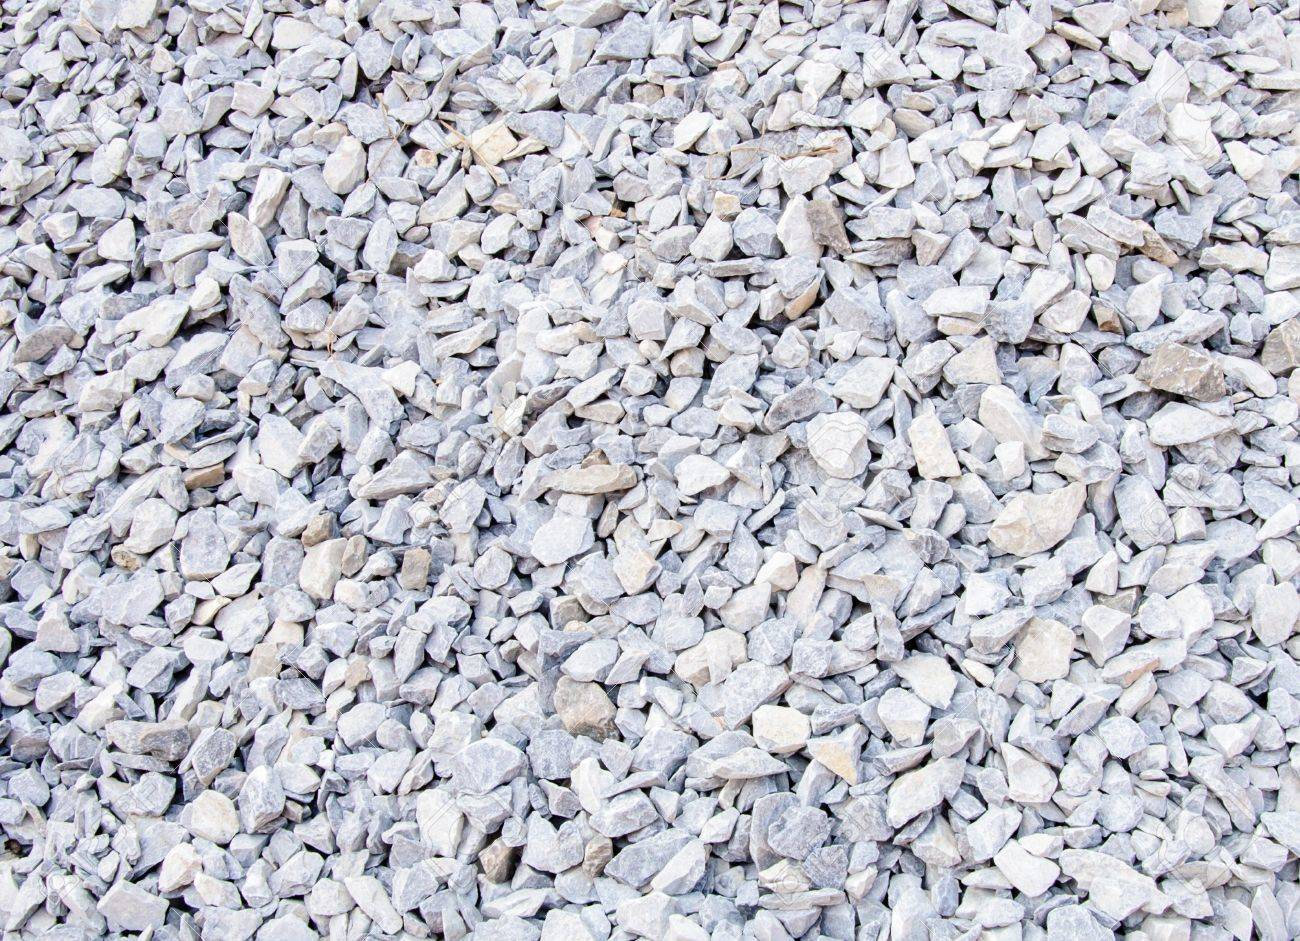 Granite stone for construction the building in Thailand Stock Photo - 17922622